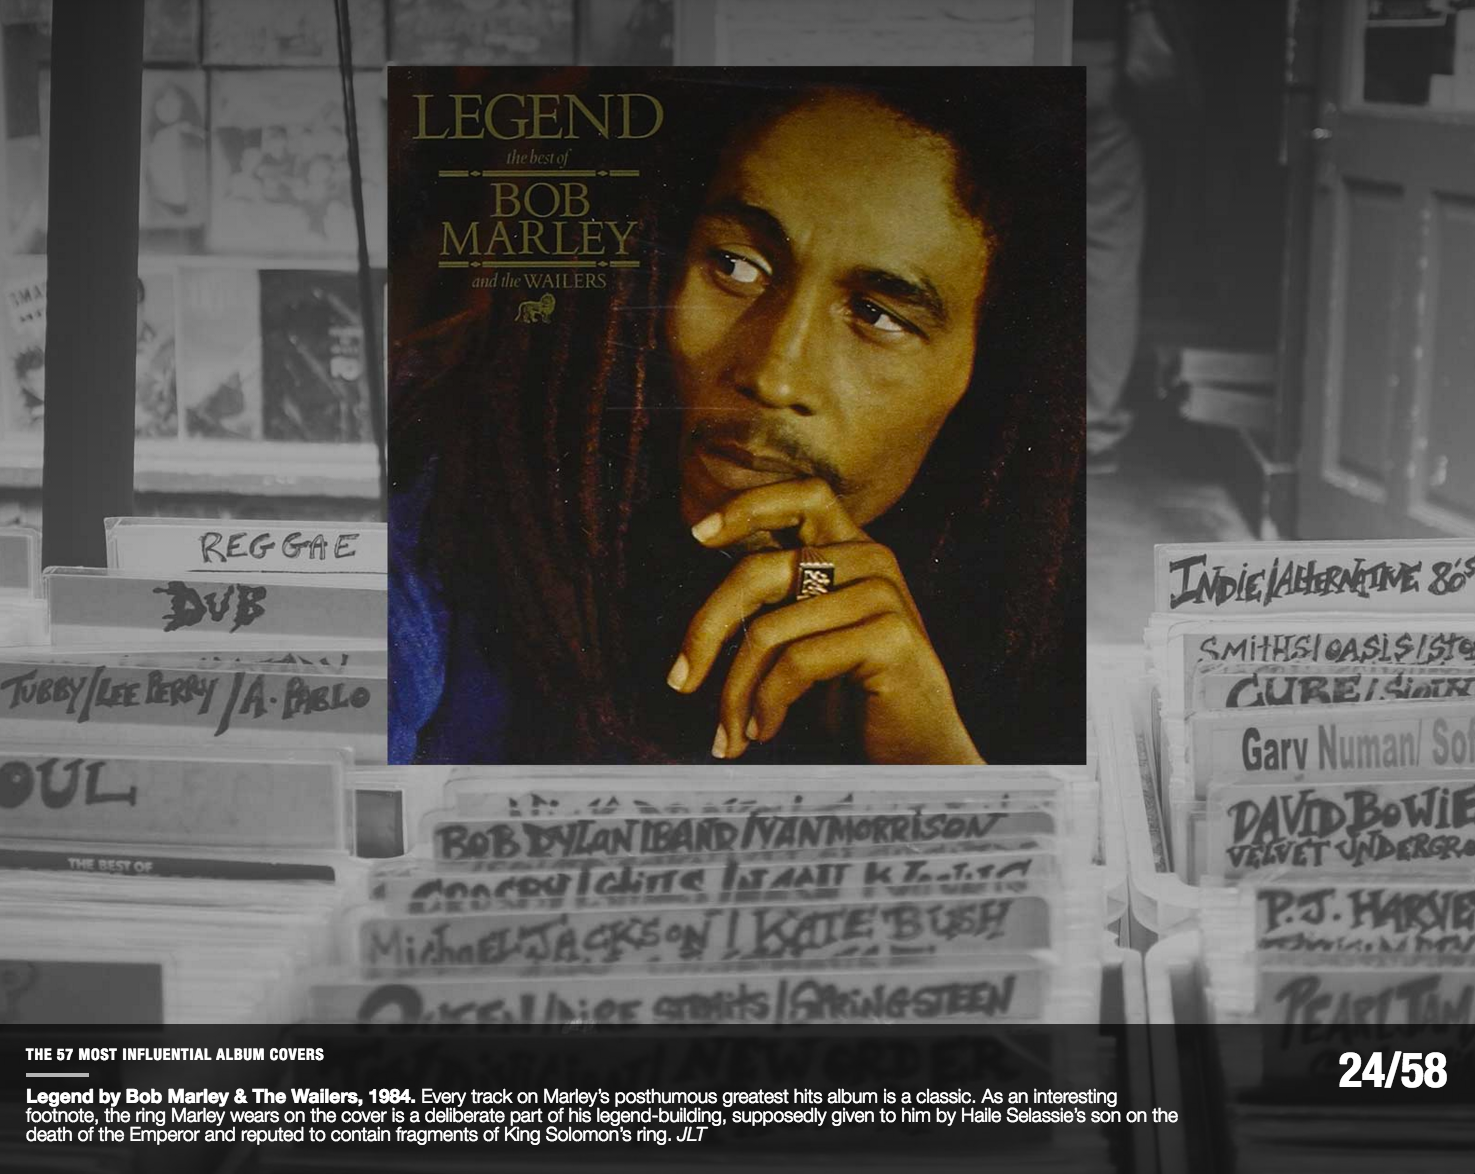 Legend, Bob Marley and the Wailers 1984, Most Influential